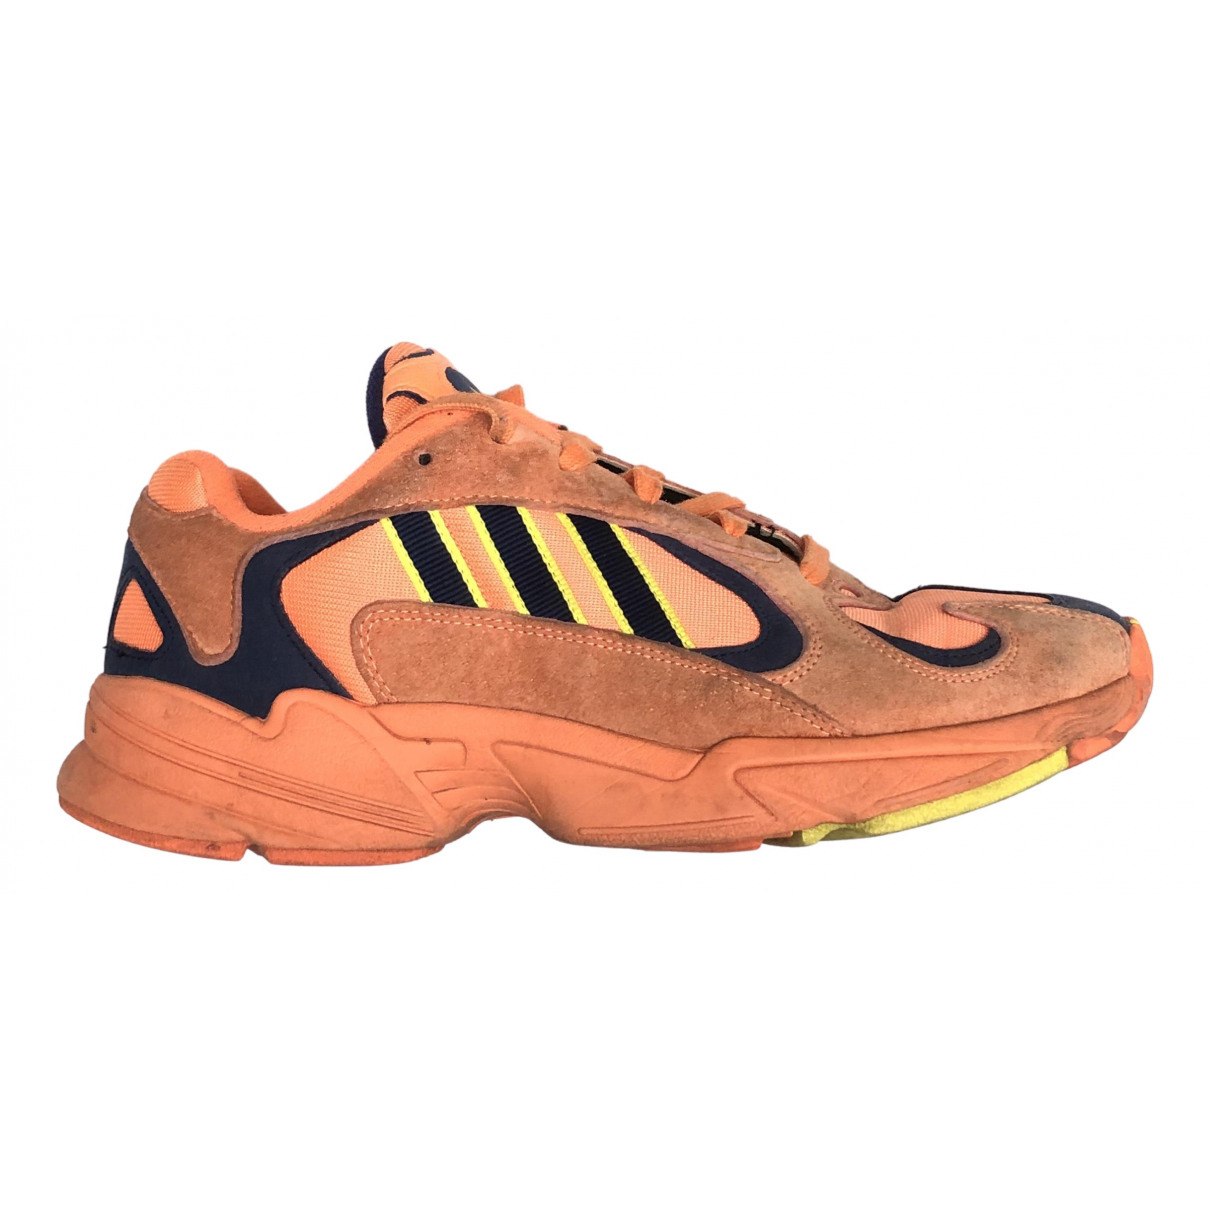 Adidas Yung-1 Orange Suede Trainers for Men 42 EU